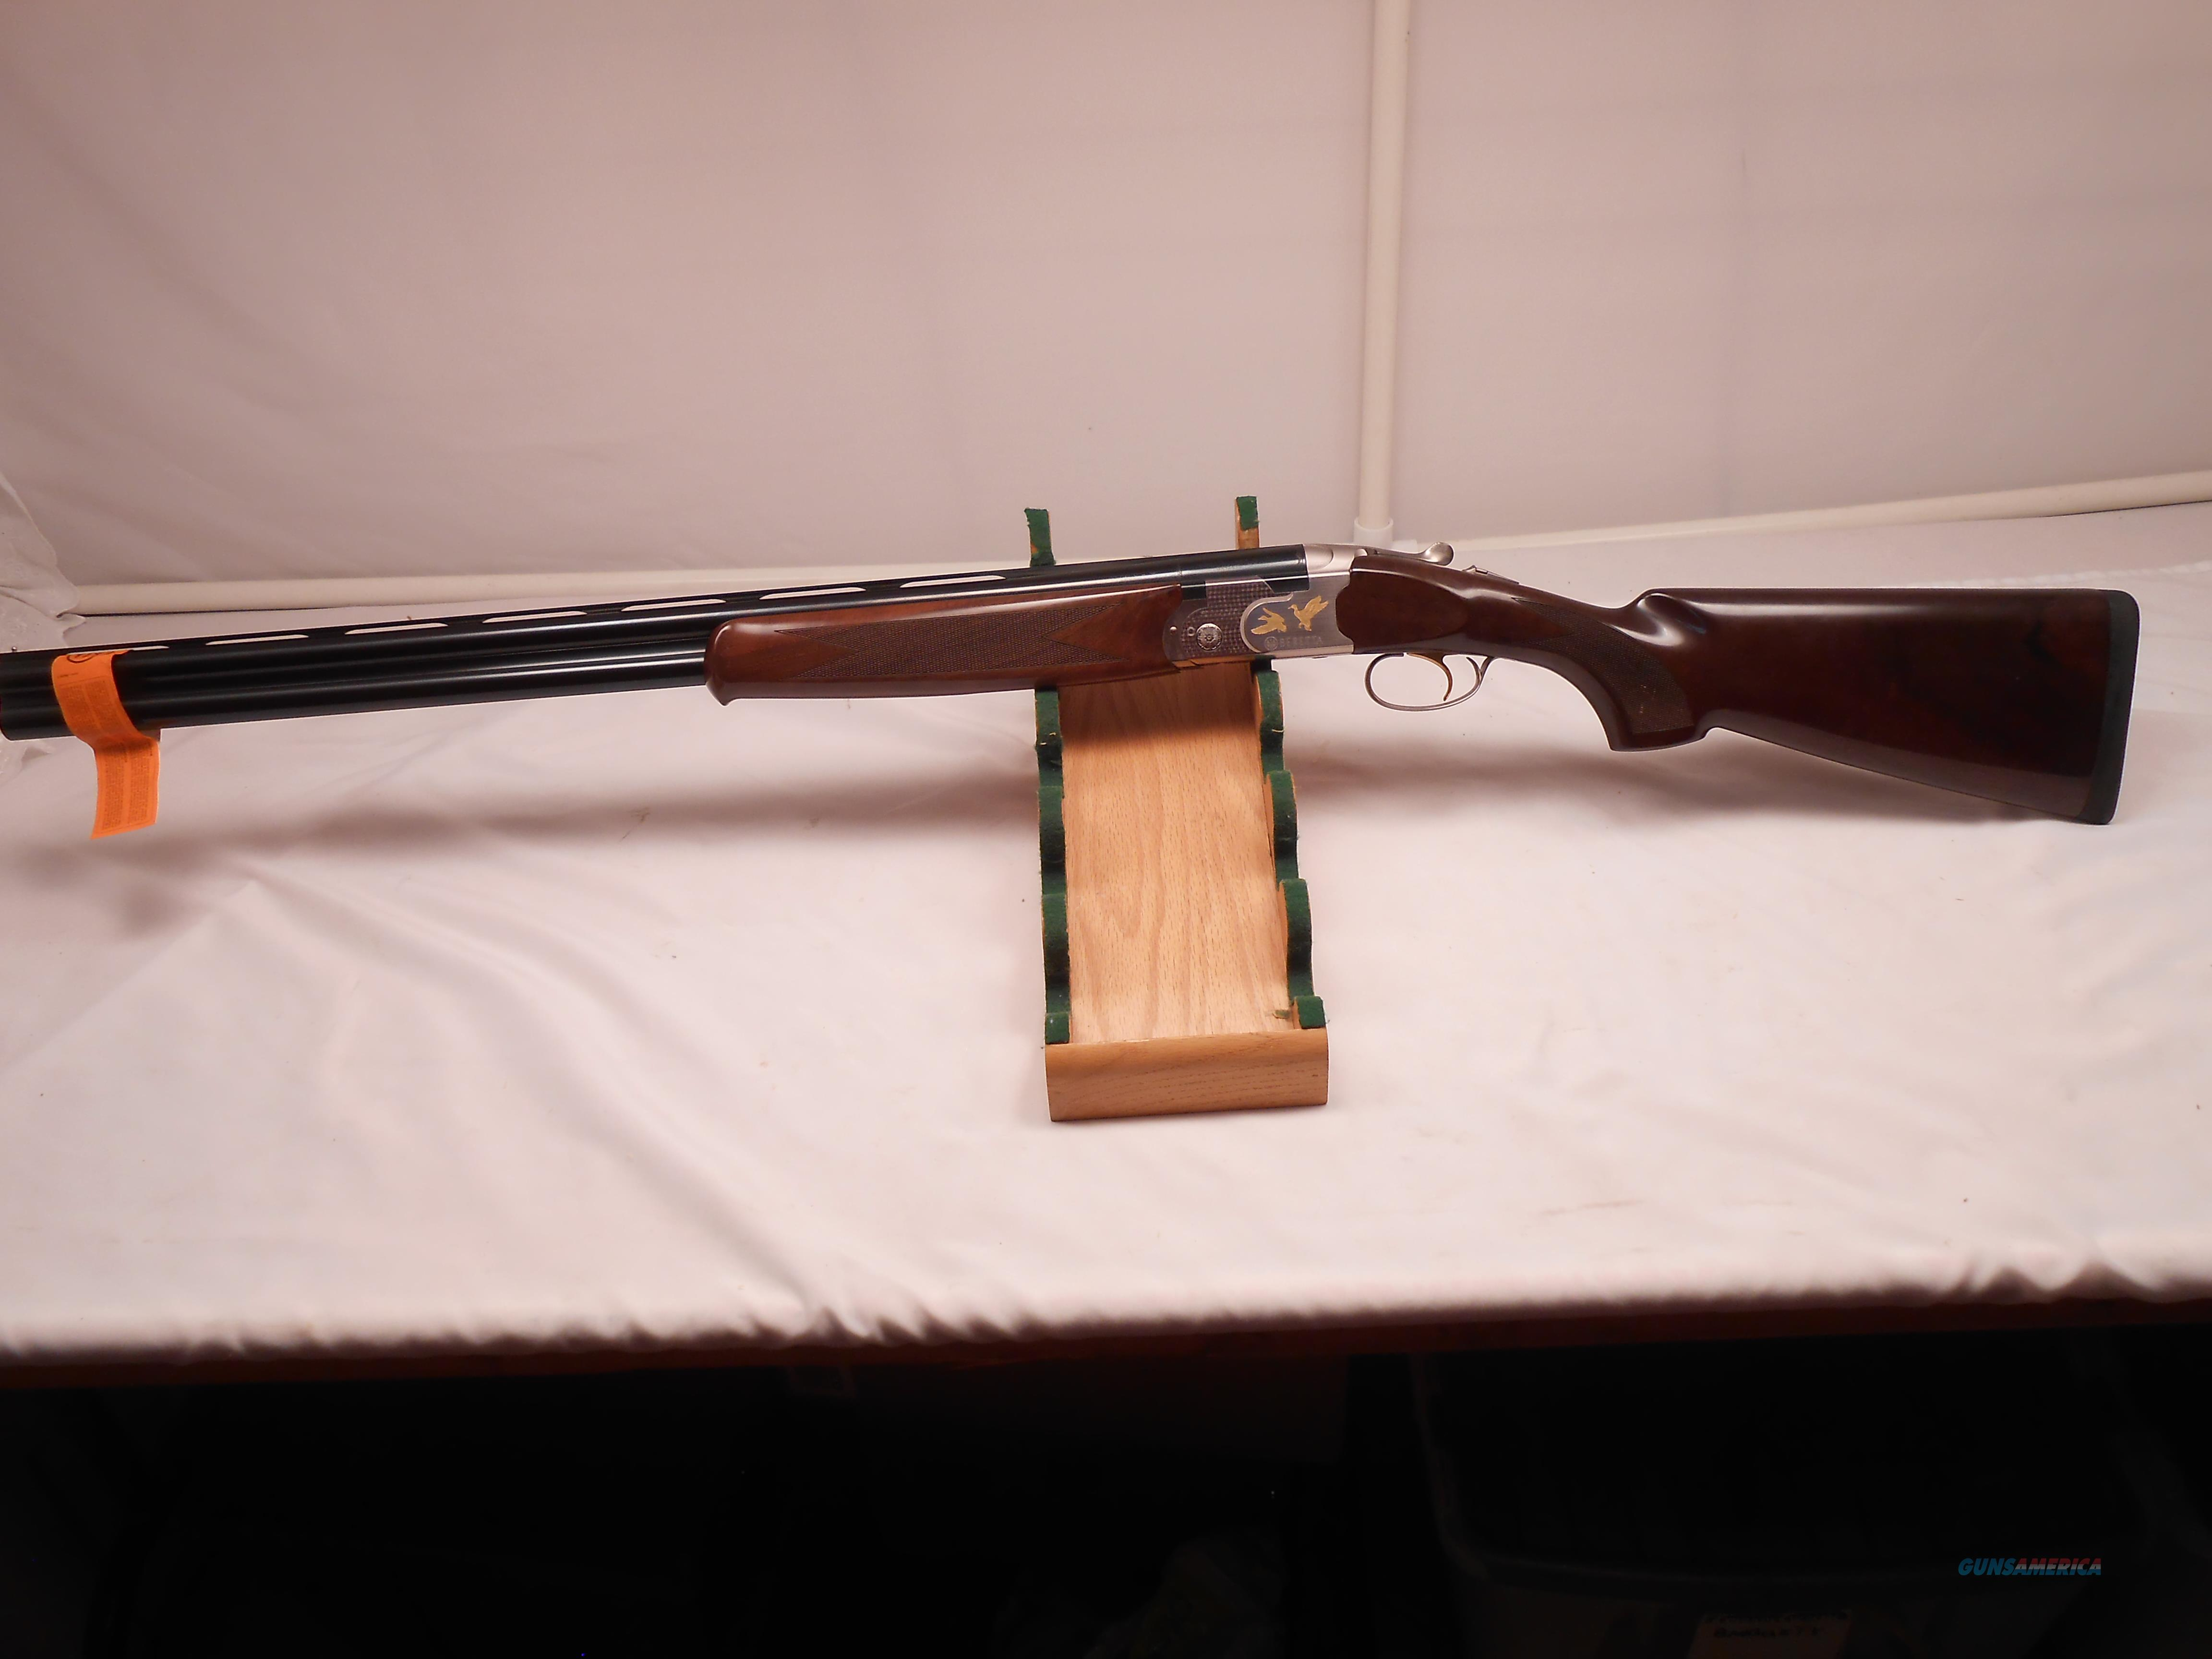 Never Fired Ducks Unlimited Beretta 686 Onyx 12Ga with Factory box and Case  Guns > Shotguns > Beretta Shotguns > O/U > Trap/Skeet